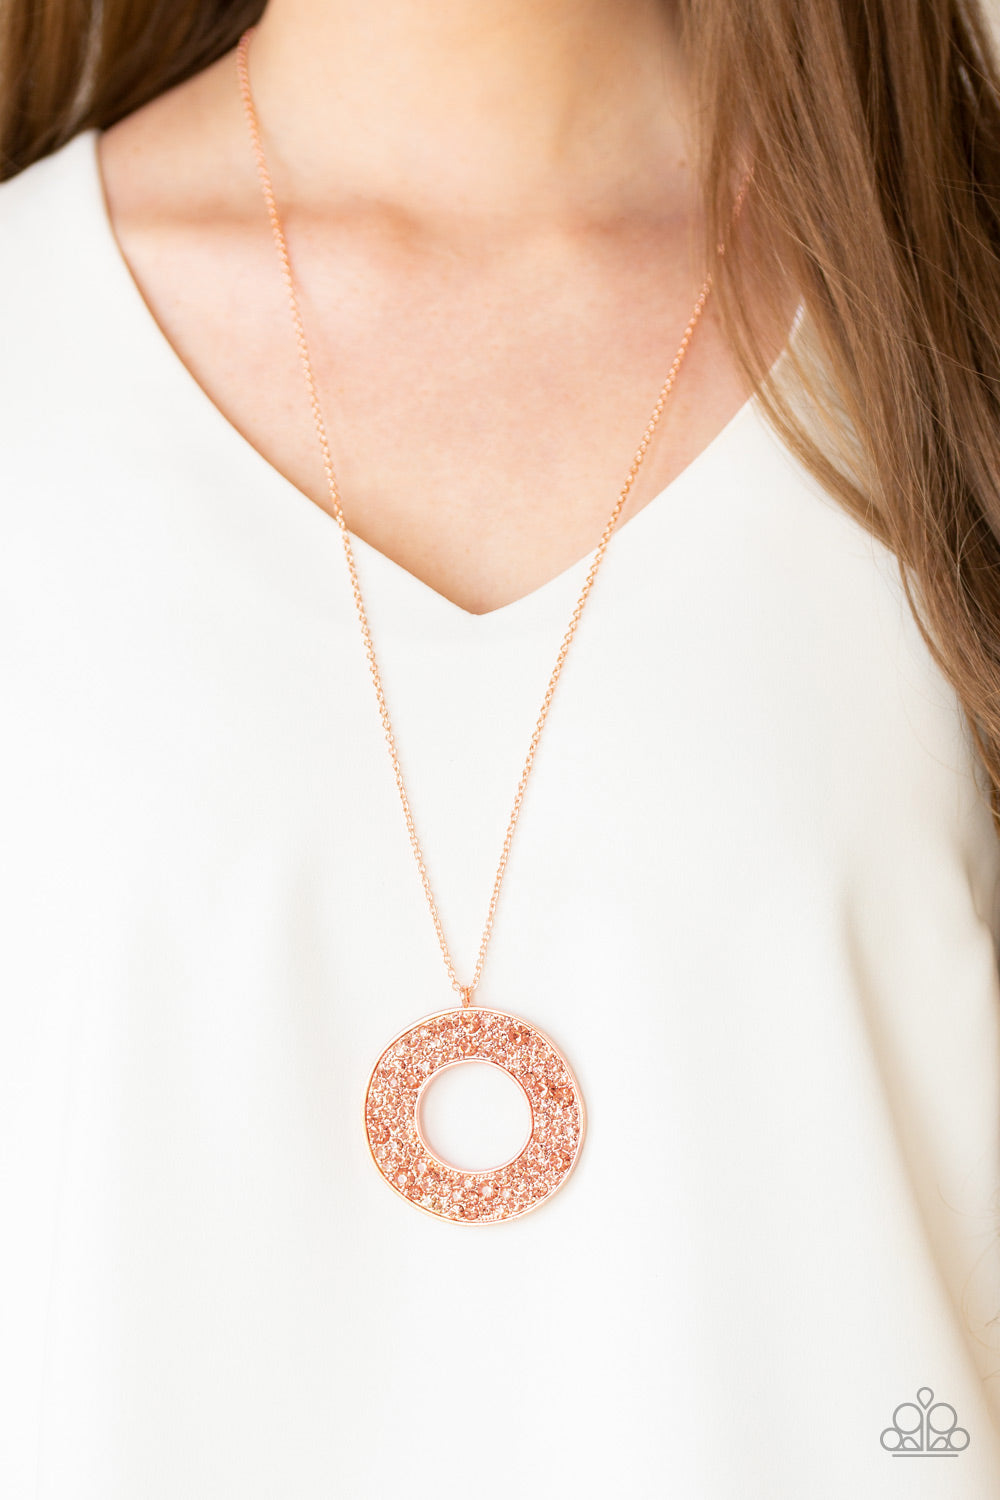 Bad HEIR Day - Copper Necklace - Paparazzi Accessories